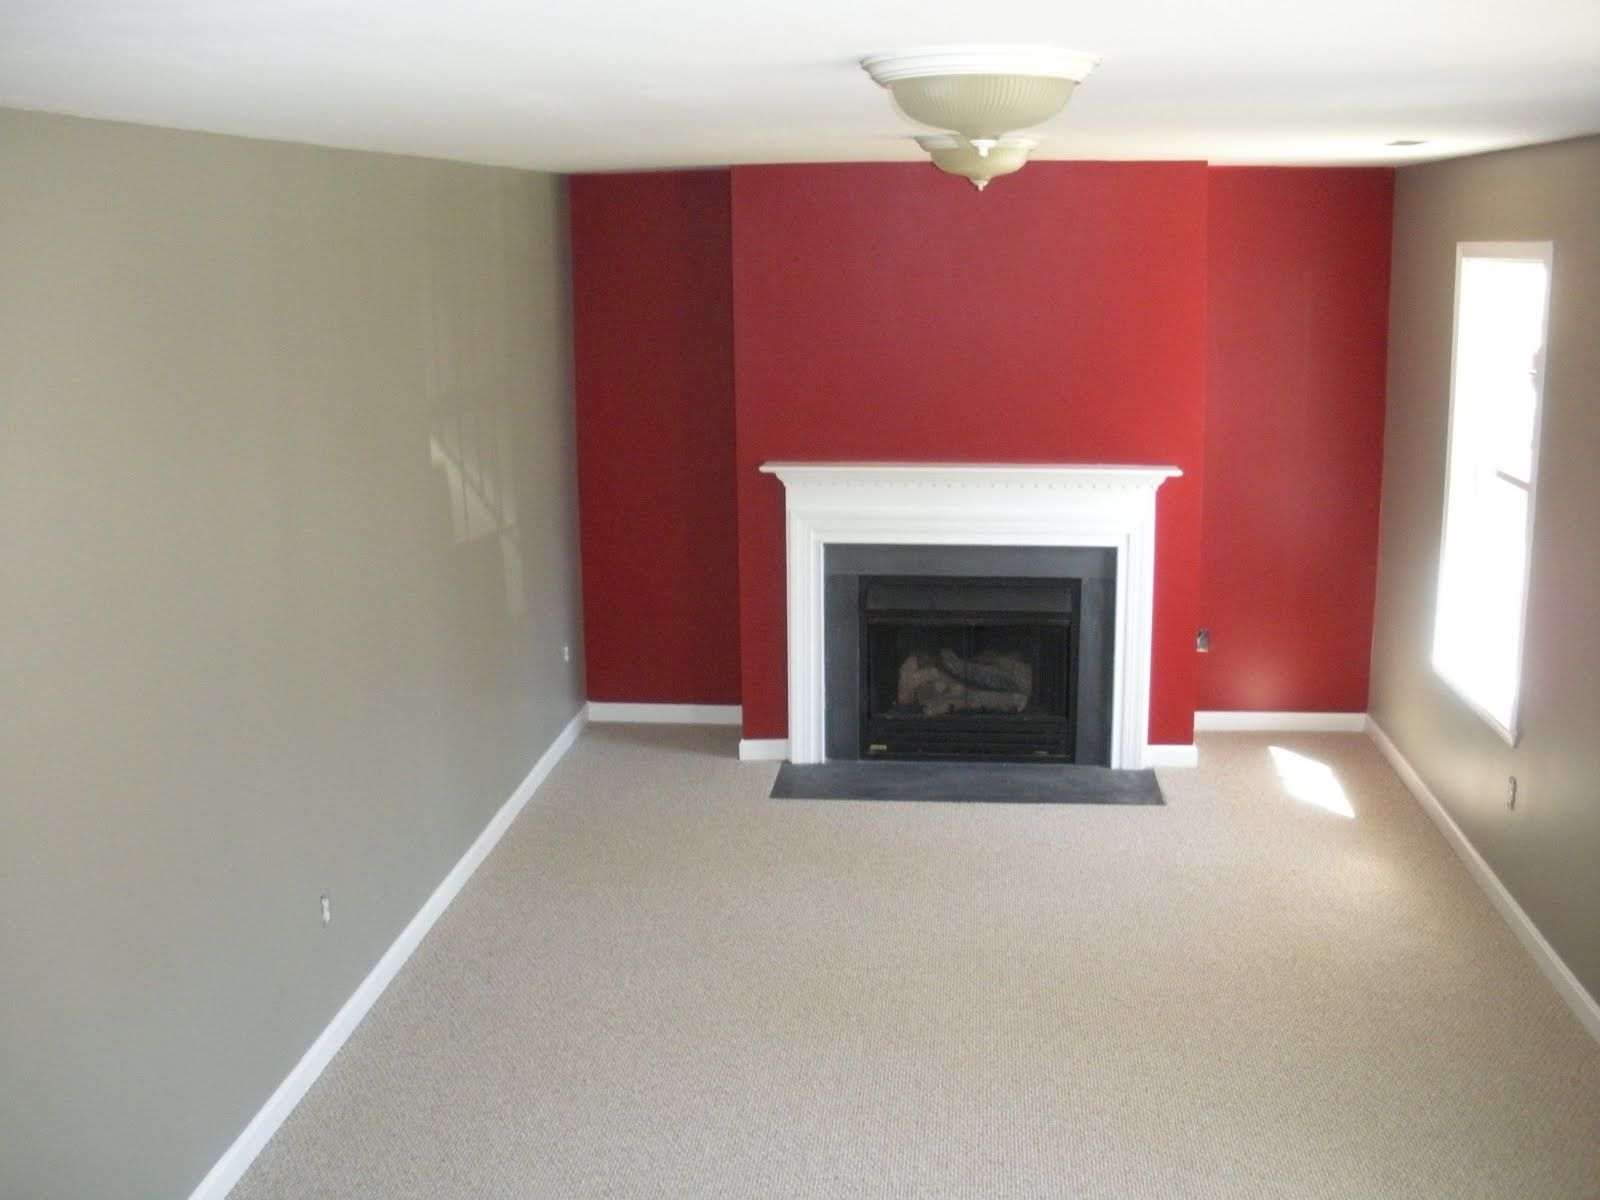 Living room paint ideas accent wall - Living Room Red Small Living Rooms Living Room Interior Living Room Ideas Living Room Accents Fireplace Accent Walls Red Accent Walls Red Walls